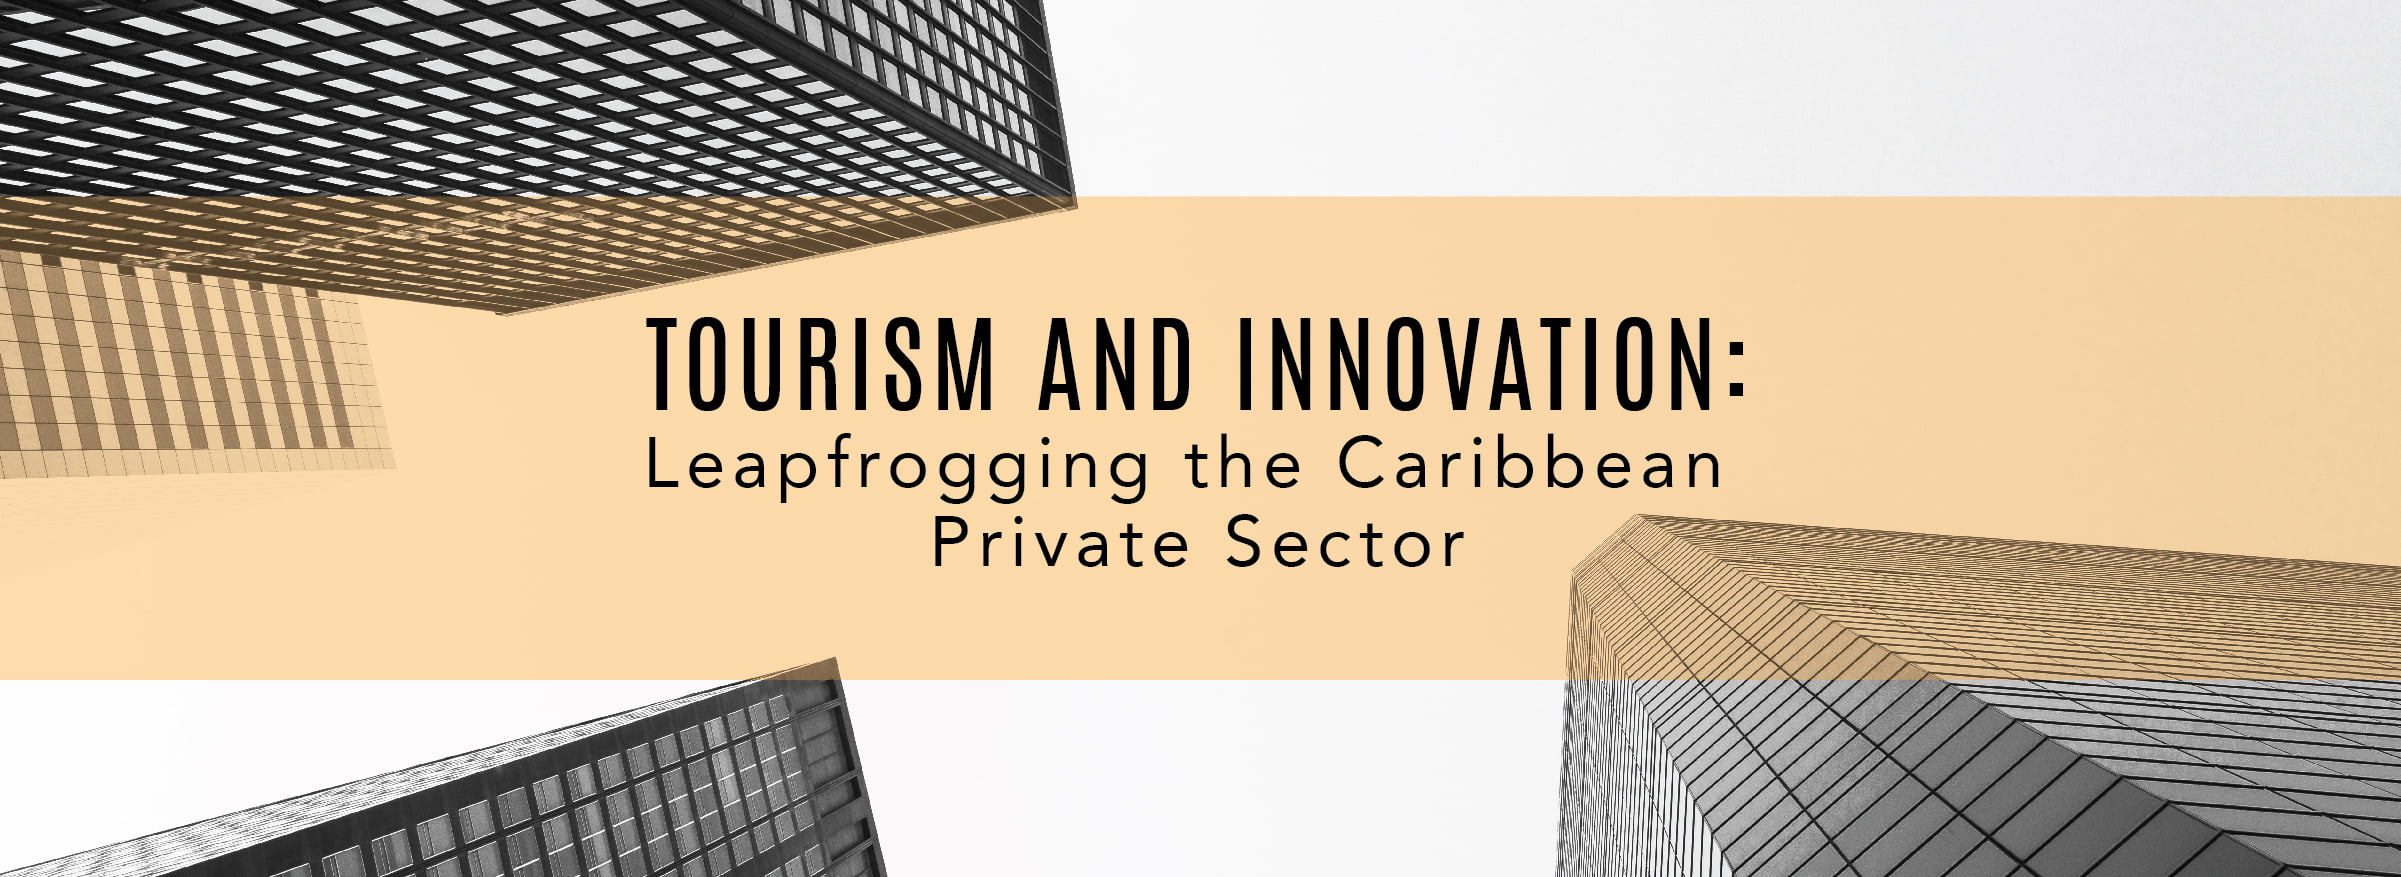 Tourism and Innovation: Leapfrogging the Caribbean Private Sector